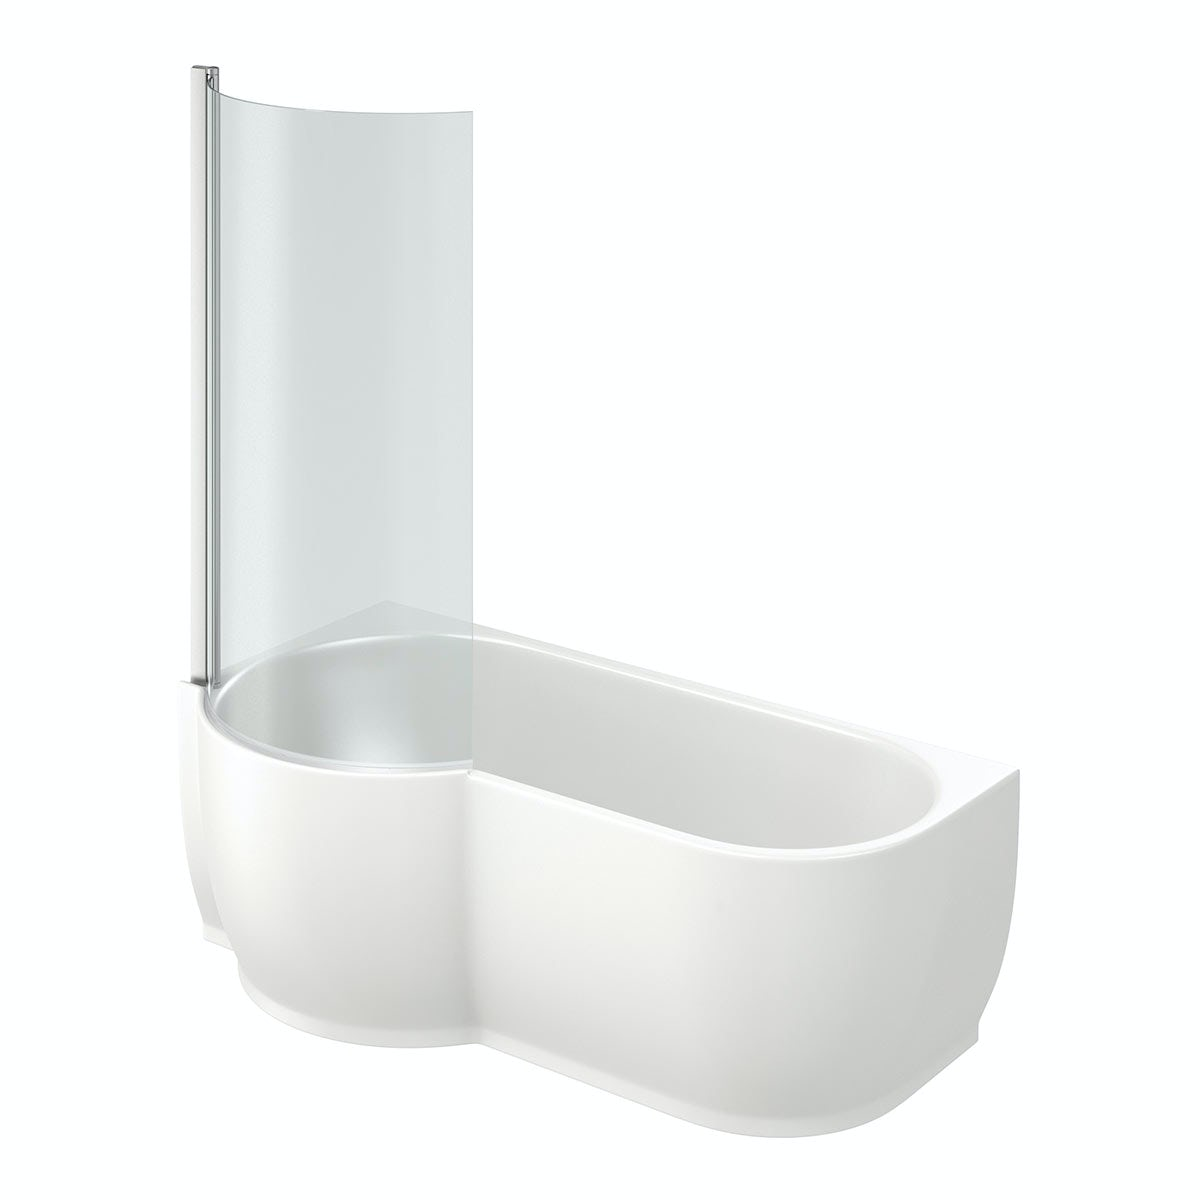 Mode Harrison left handed P shaped shower bath and shower screen